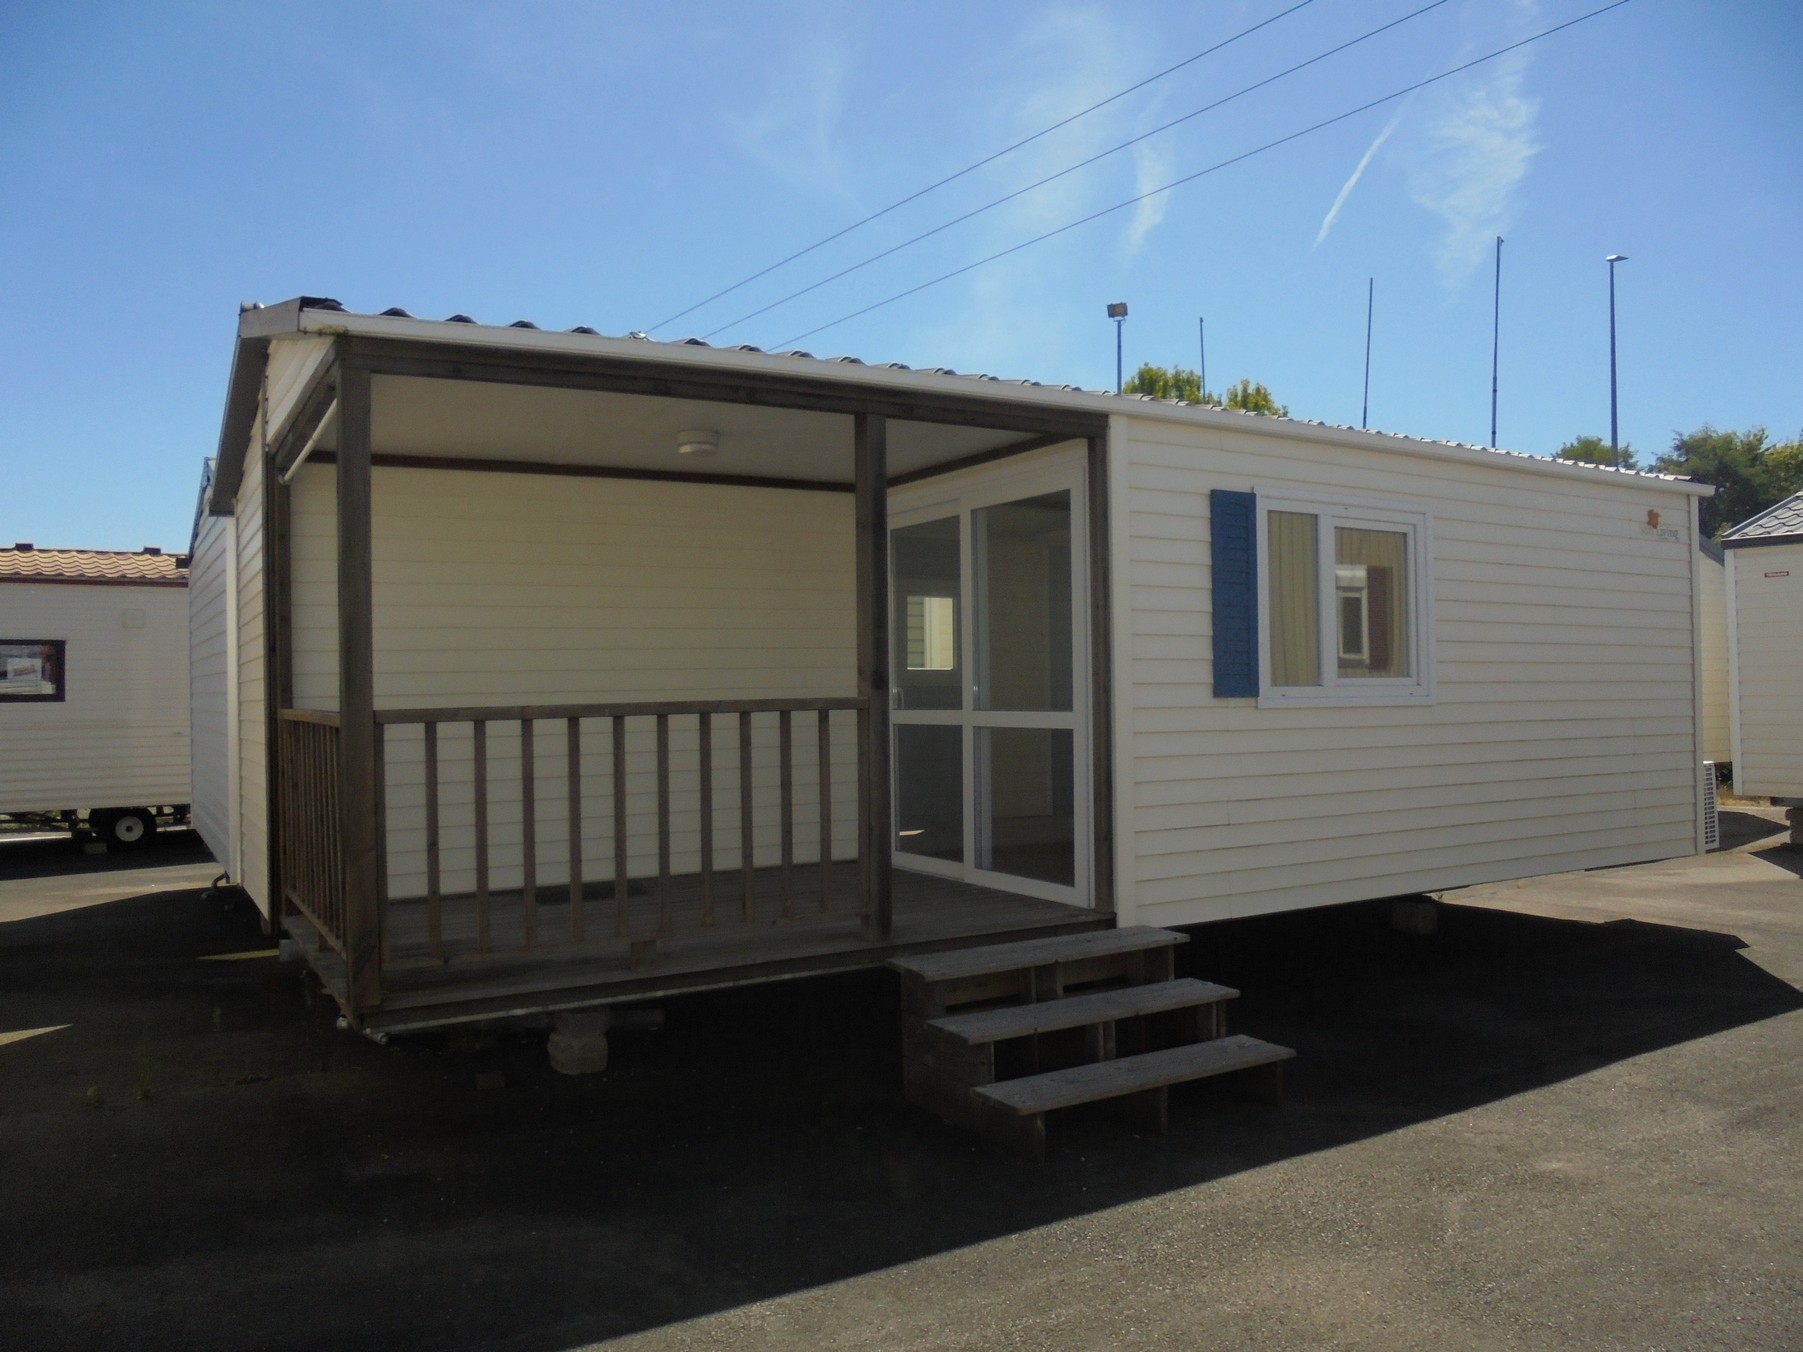 Mobil home occasion ouest france mobil-home occasion sur le bon coin